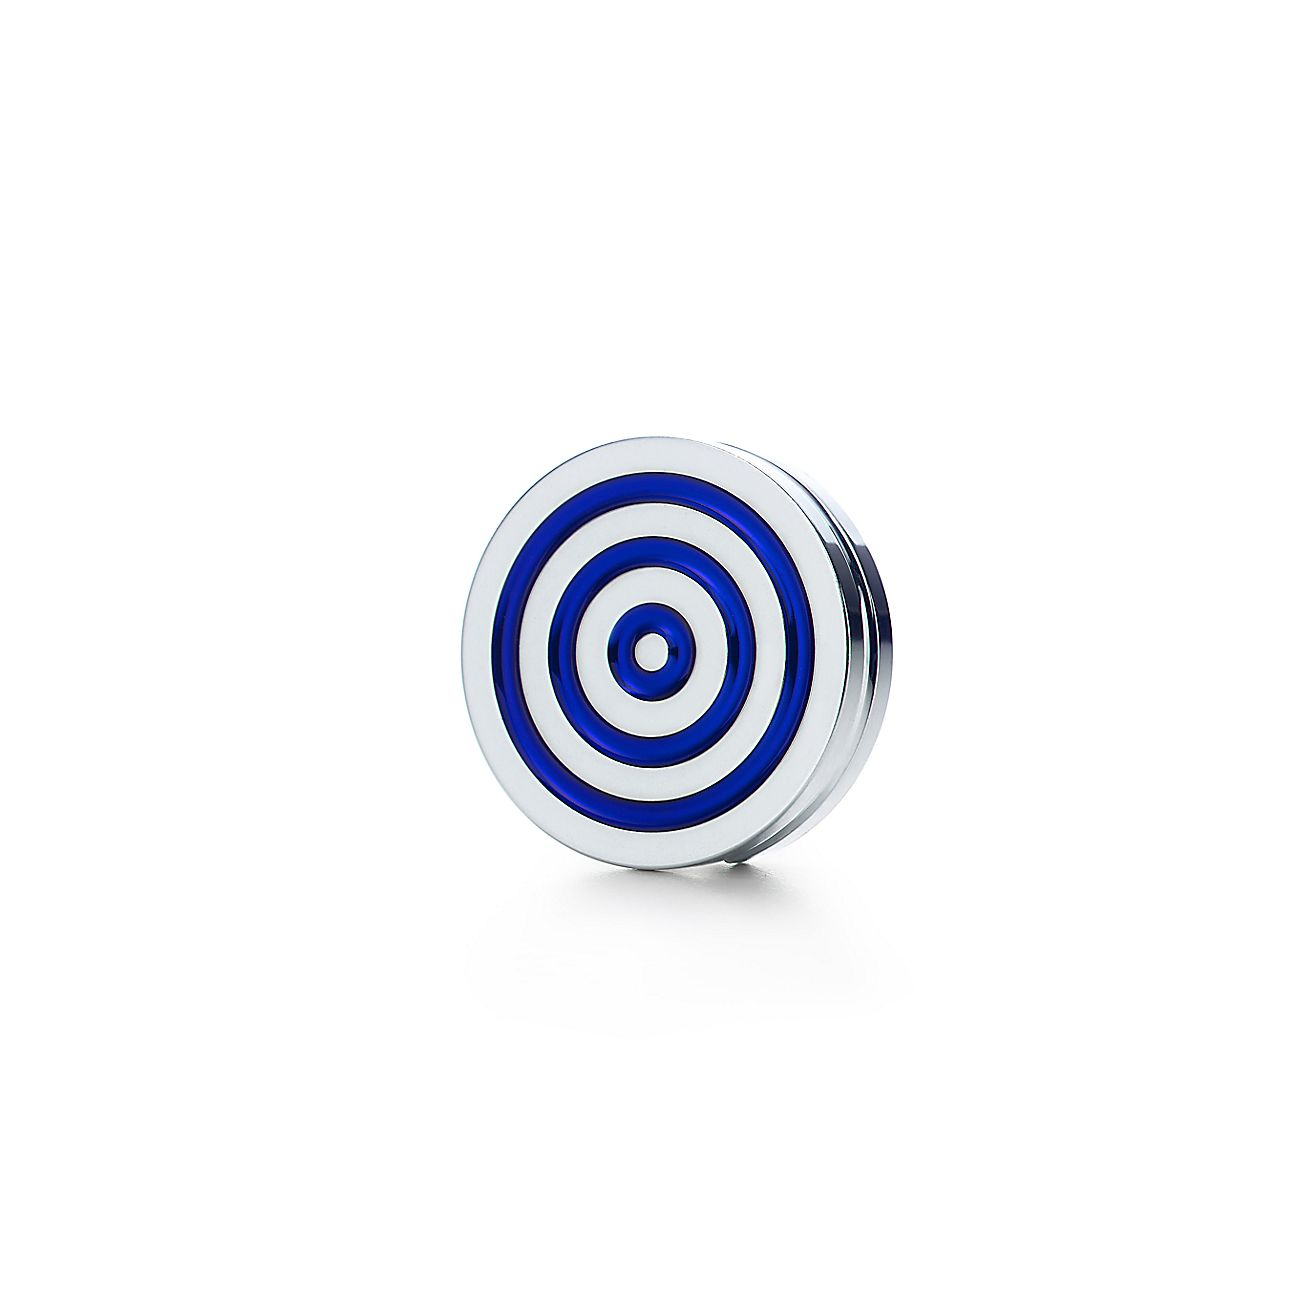 Paloma's Groove™<br>Button cover